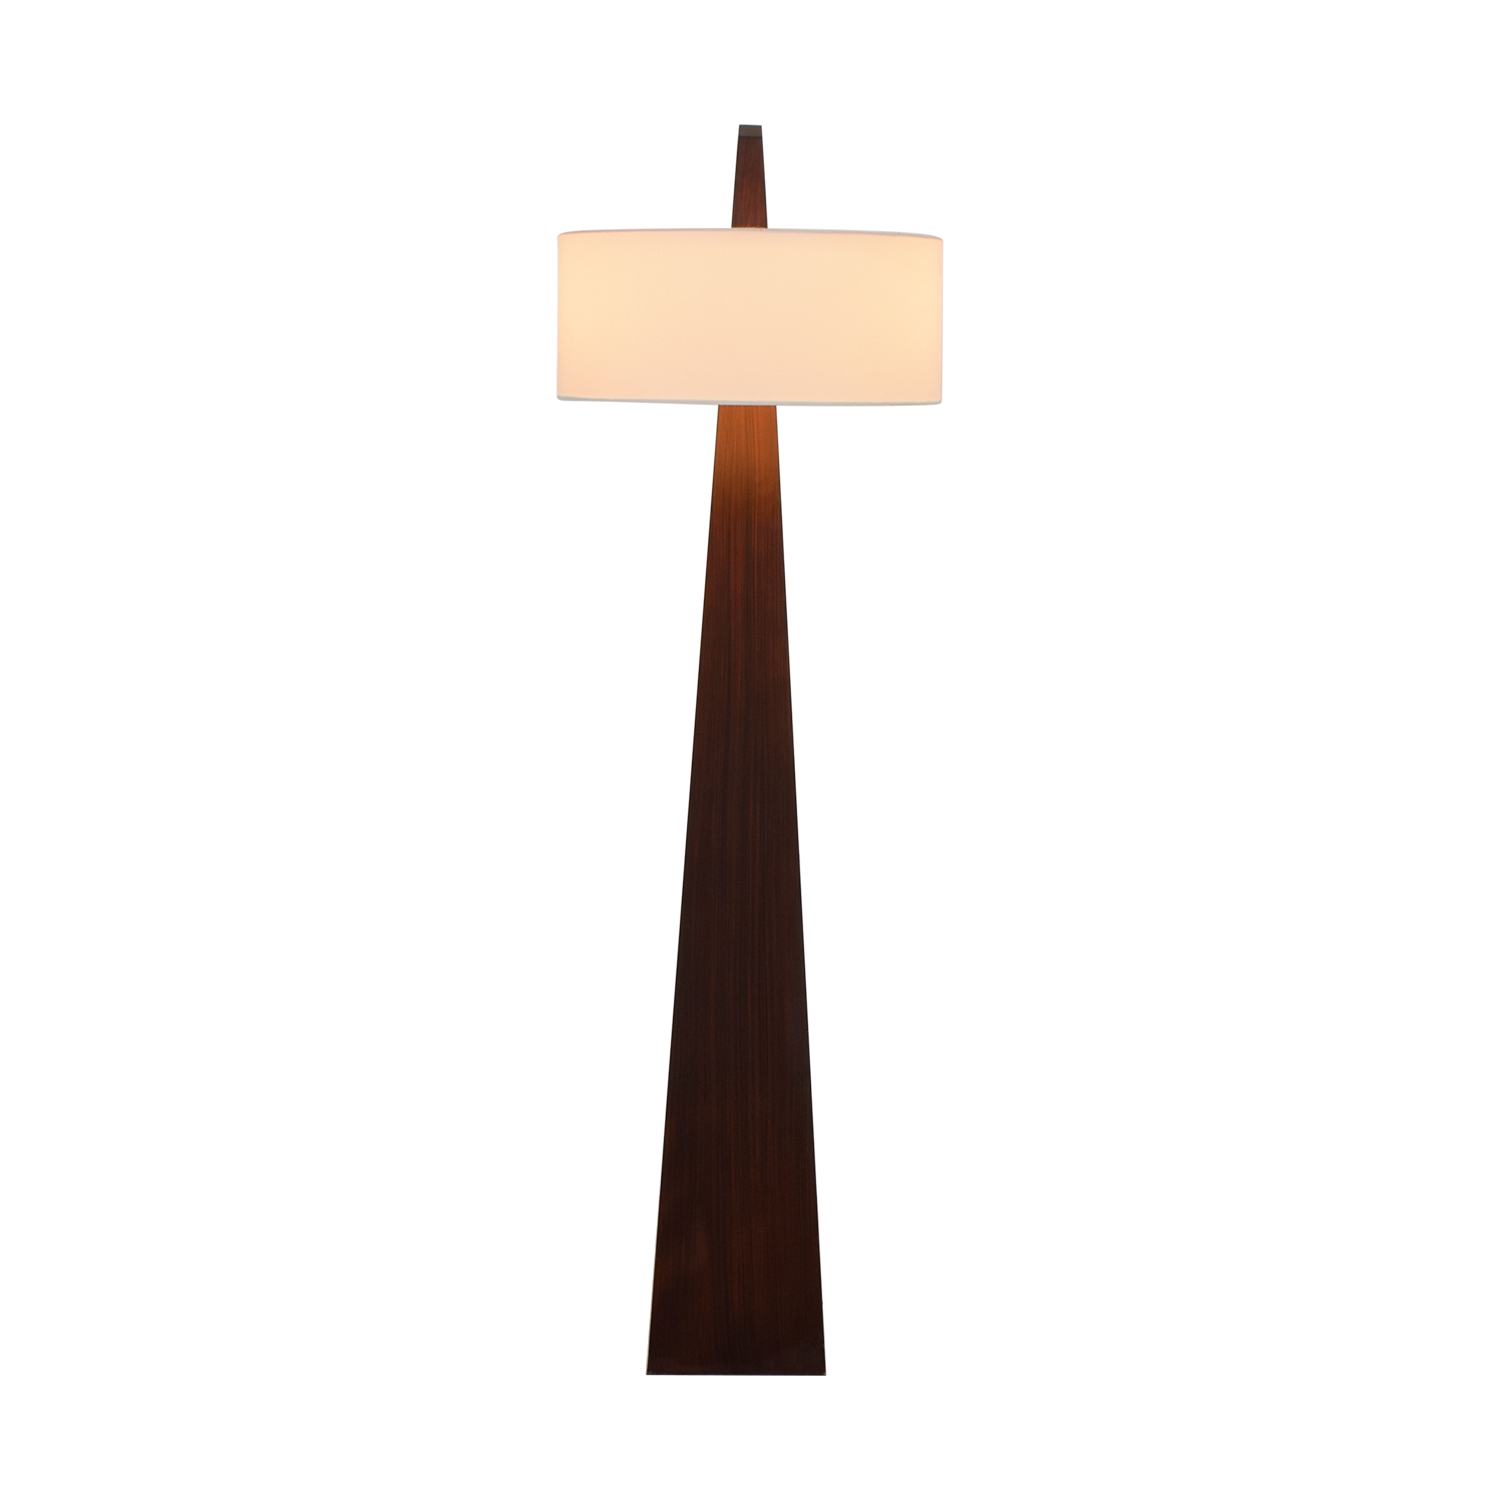 Nova Nova Wood Slab Floor Lamp Decor